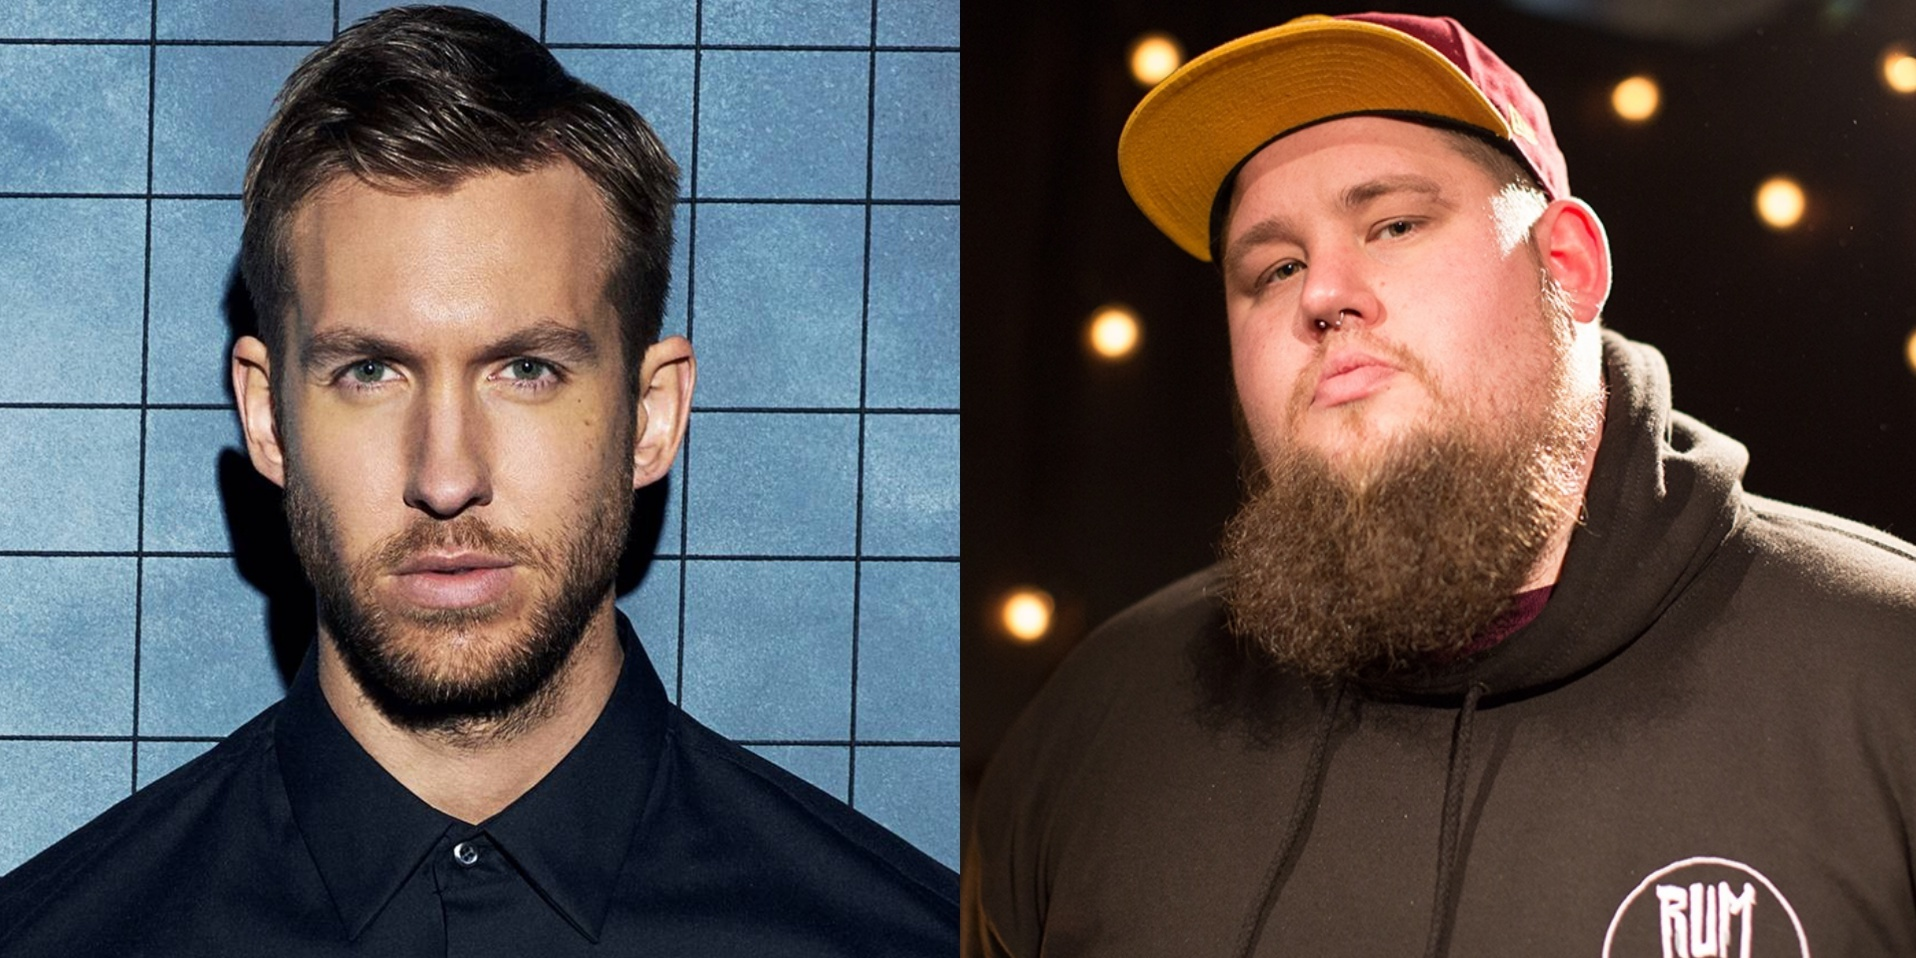 Calvin Harris releases new gospel-inspired single 'Giant' featuring Rag'n'Bone Man – listen